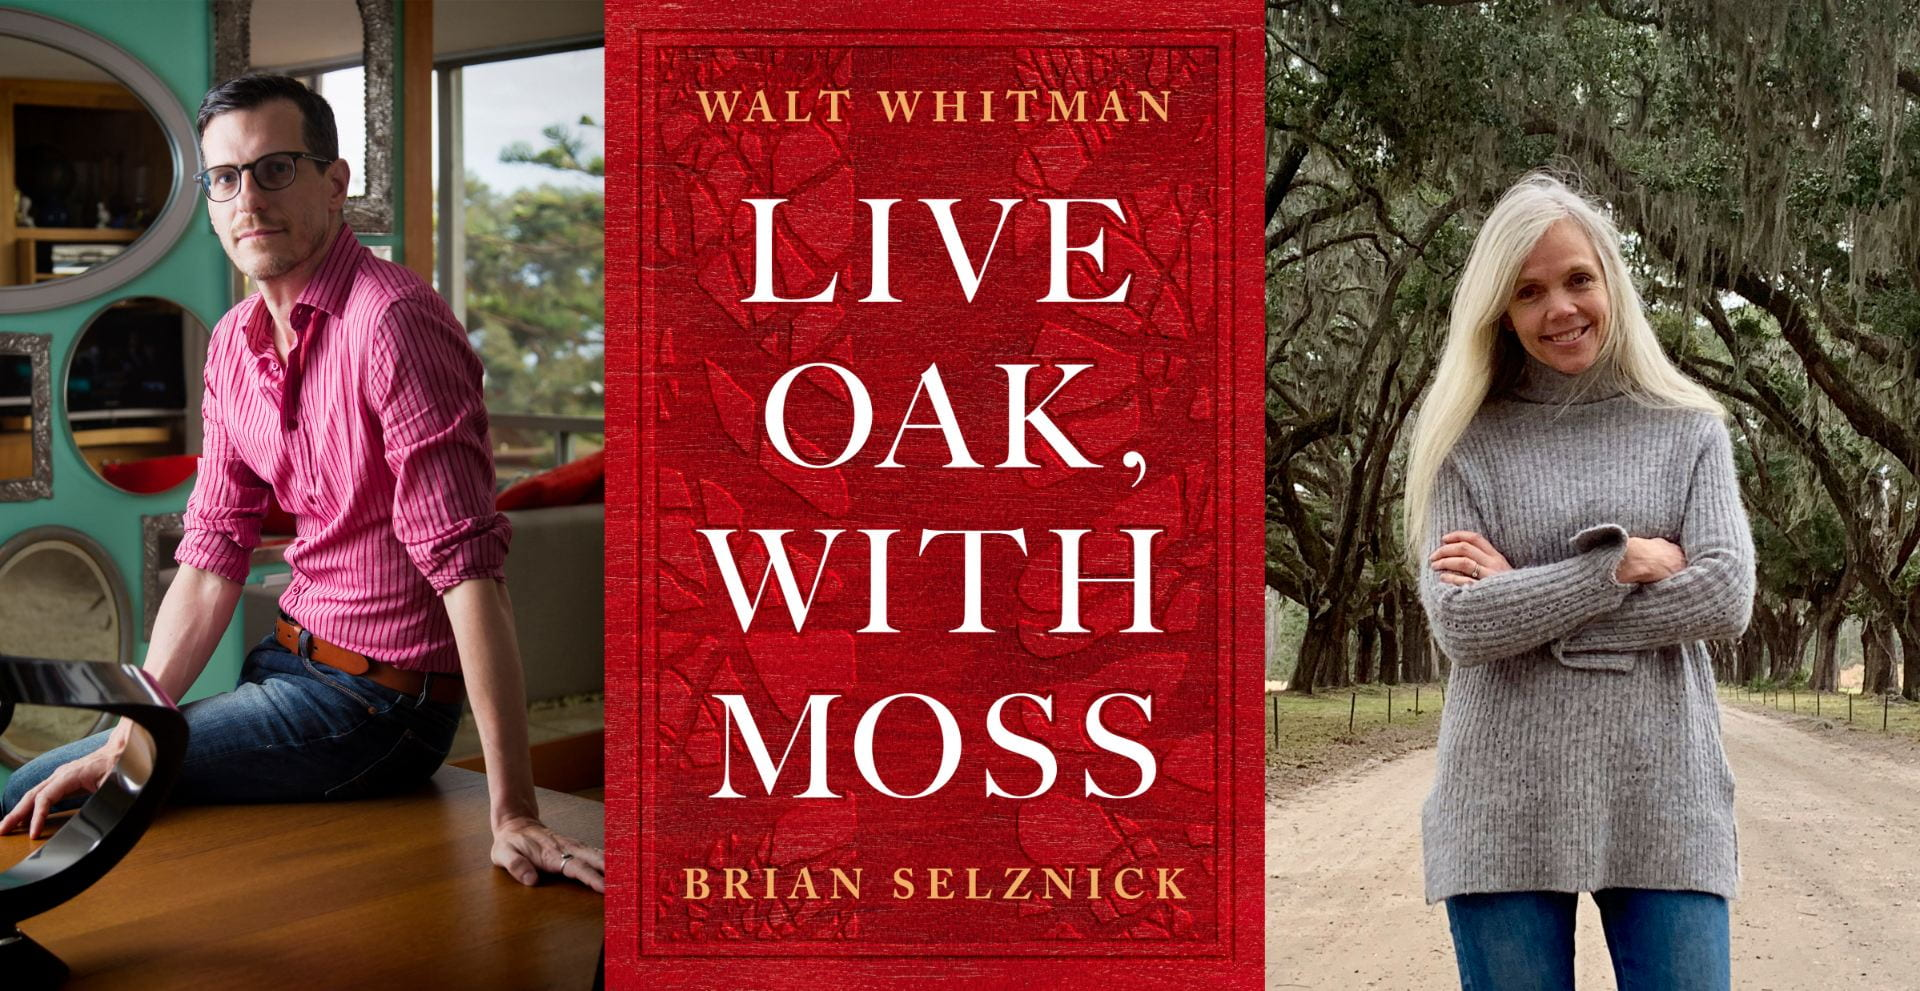 Illustrator Brian Selznick (left) and world-renowned Walt Whitman scholar Karen Karbeinar (right) will present a lecture and live performance on Live Oak, With Moss (center).